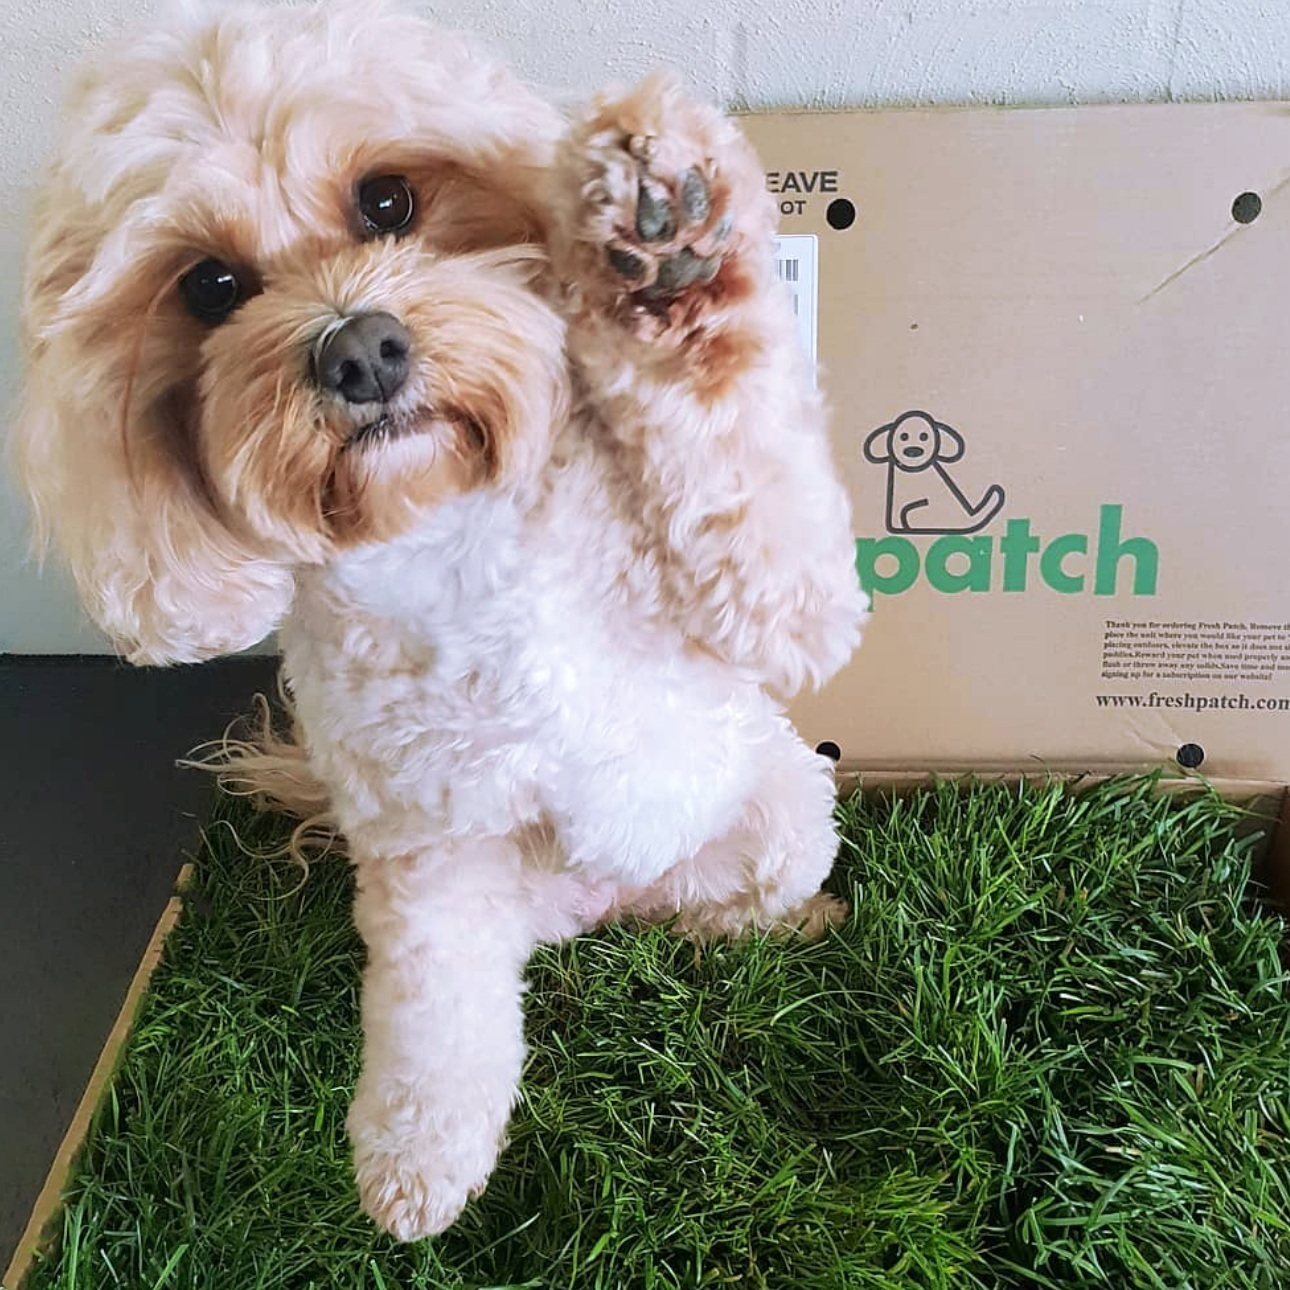 We Dig: Fresh Patch - You may have seen Fresh Patch grass at Dig dog-friendly indoor events across the country! Here are six reasons why we dig disposable, indoor dog potties with real grass. Read More